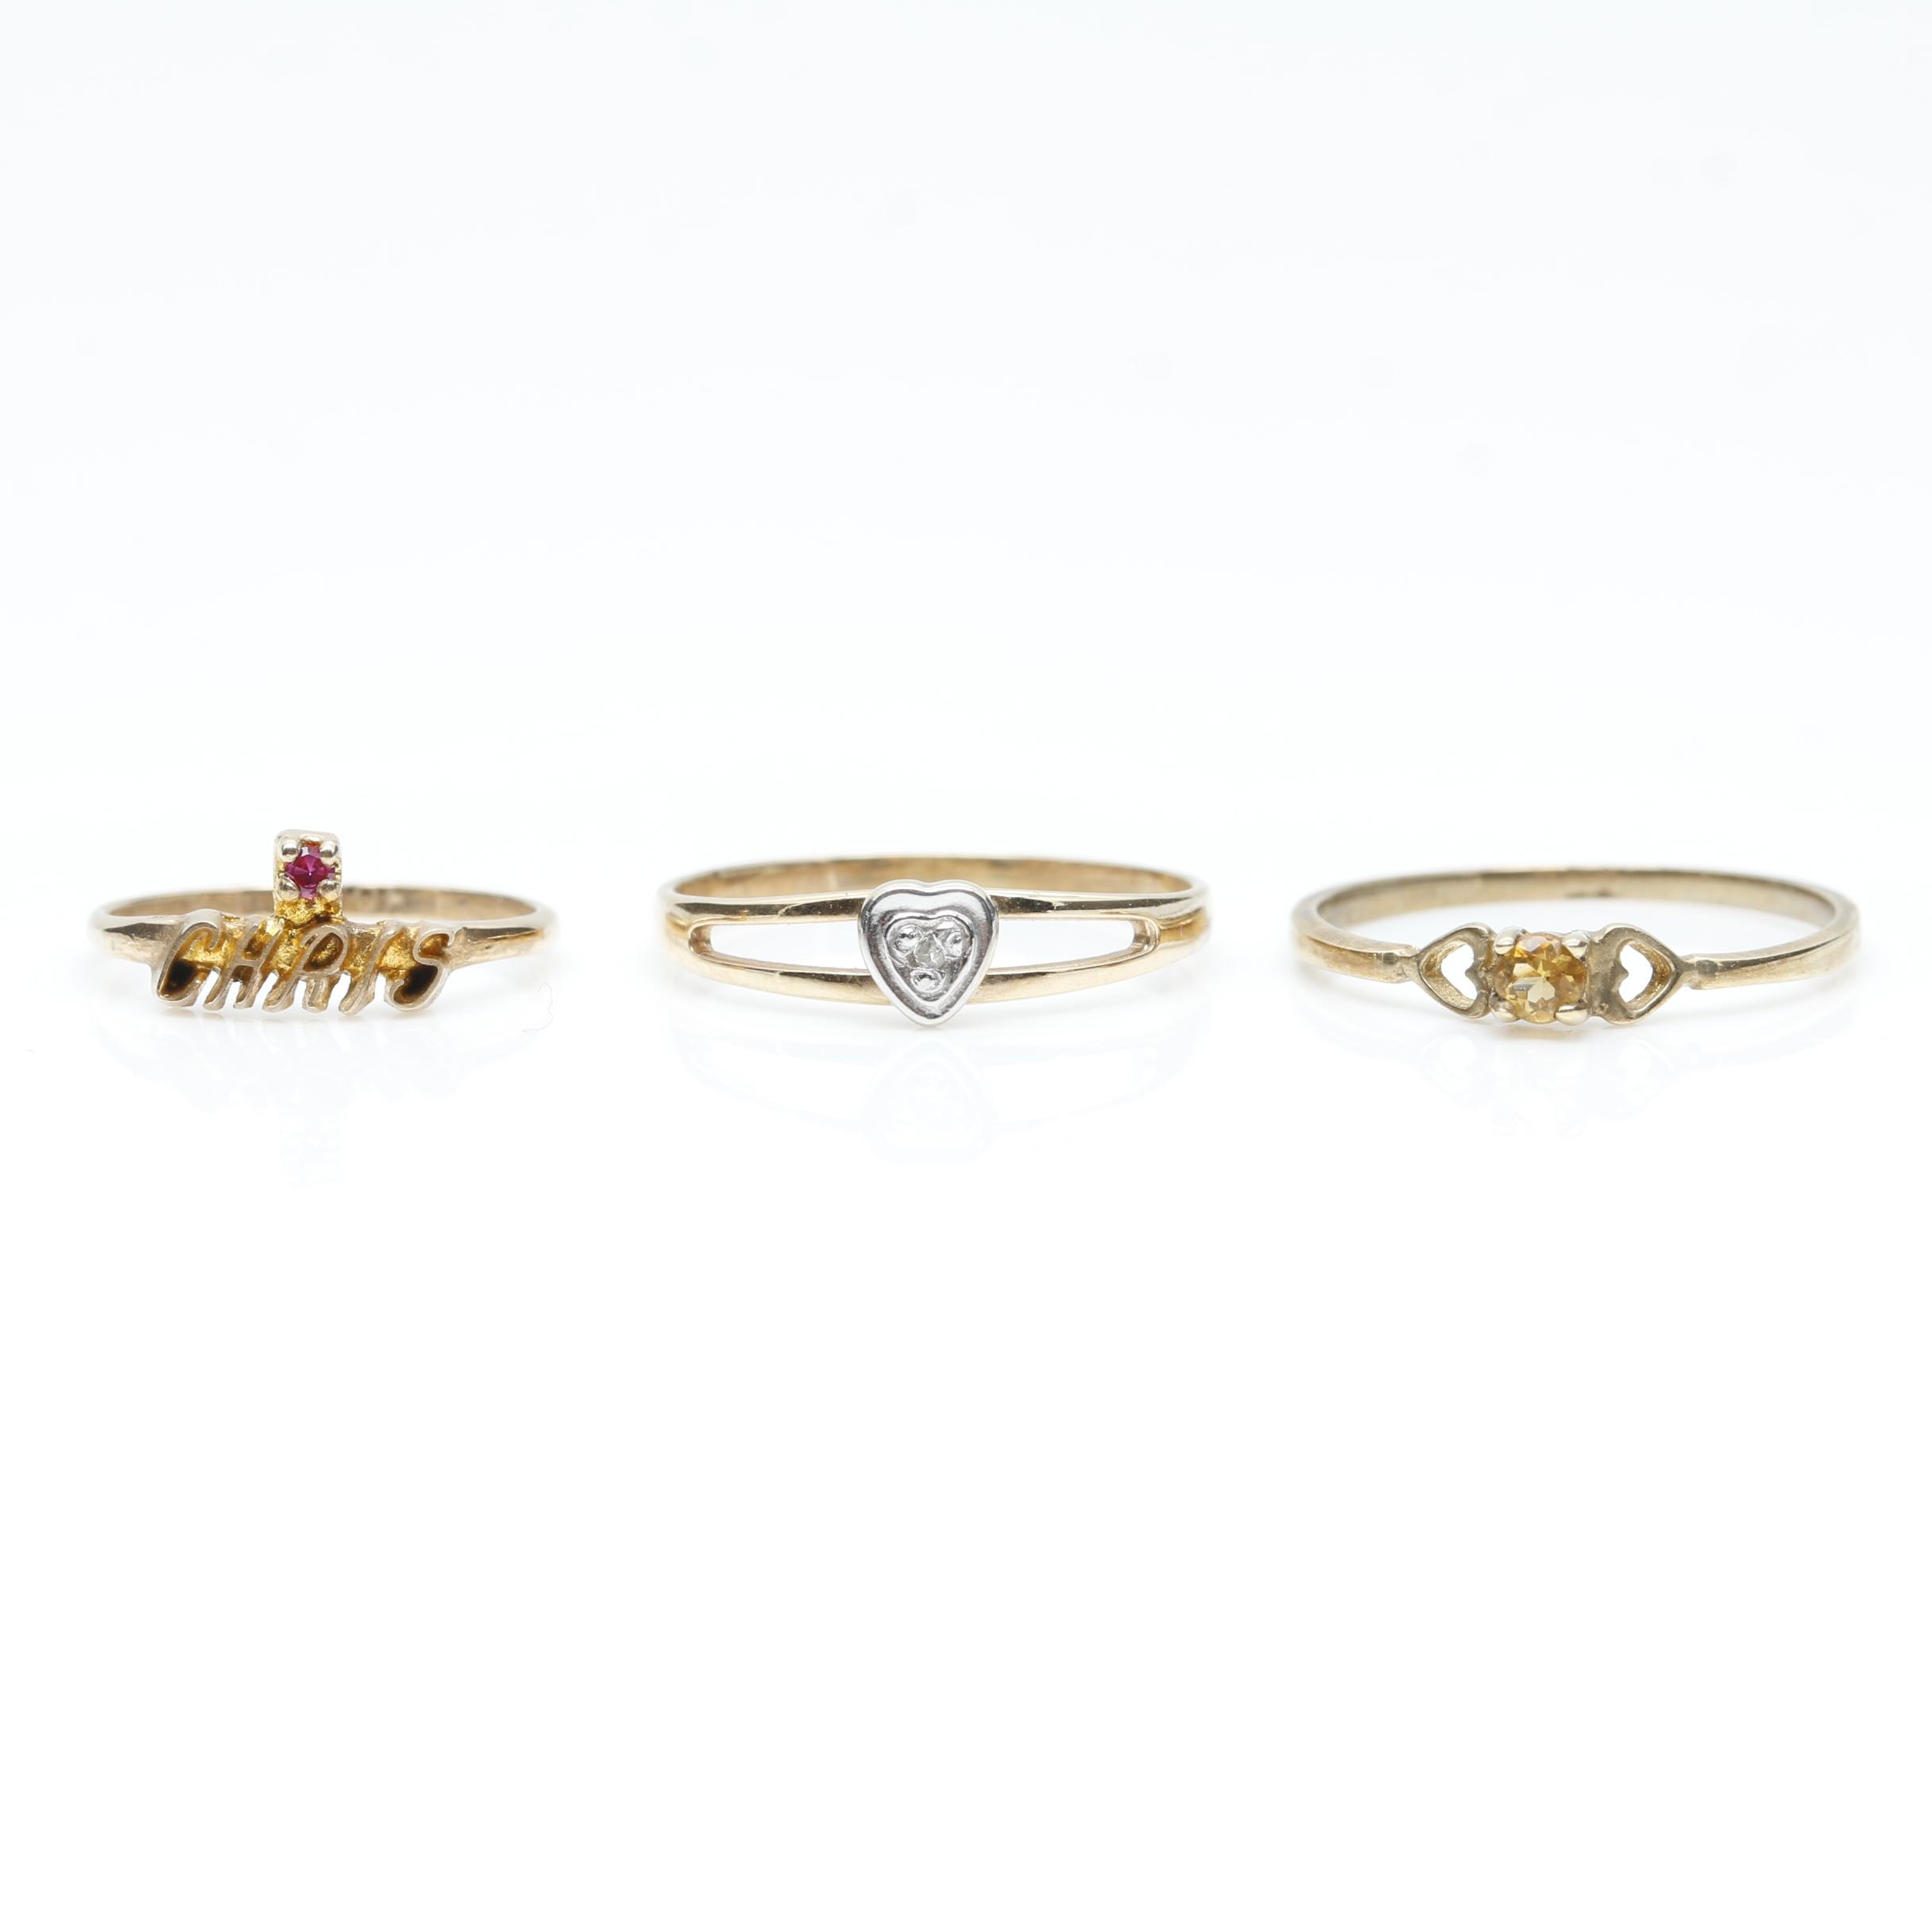 10K Yellow Gold Citrine, Synthetic Spinel, and Diamond Infant Ring Selection